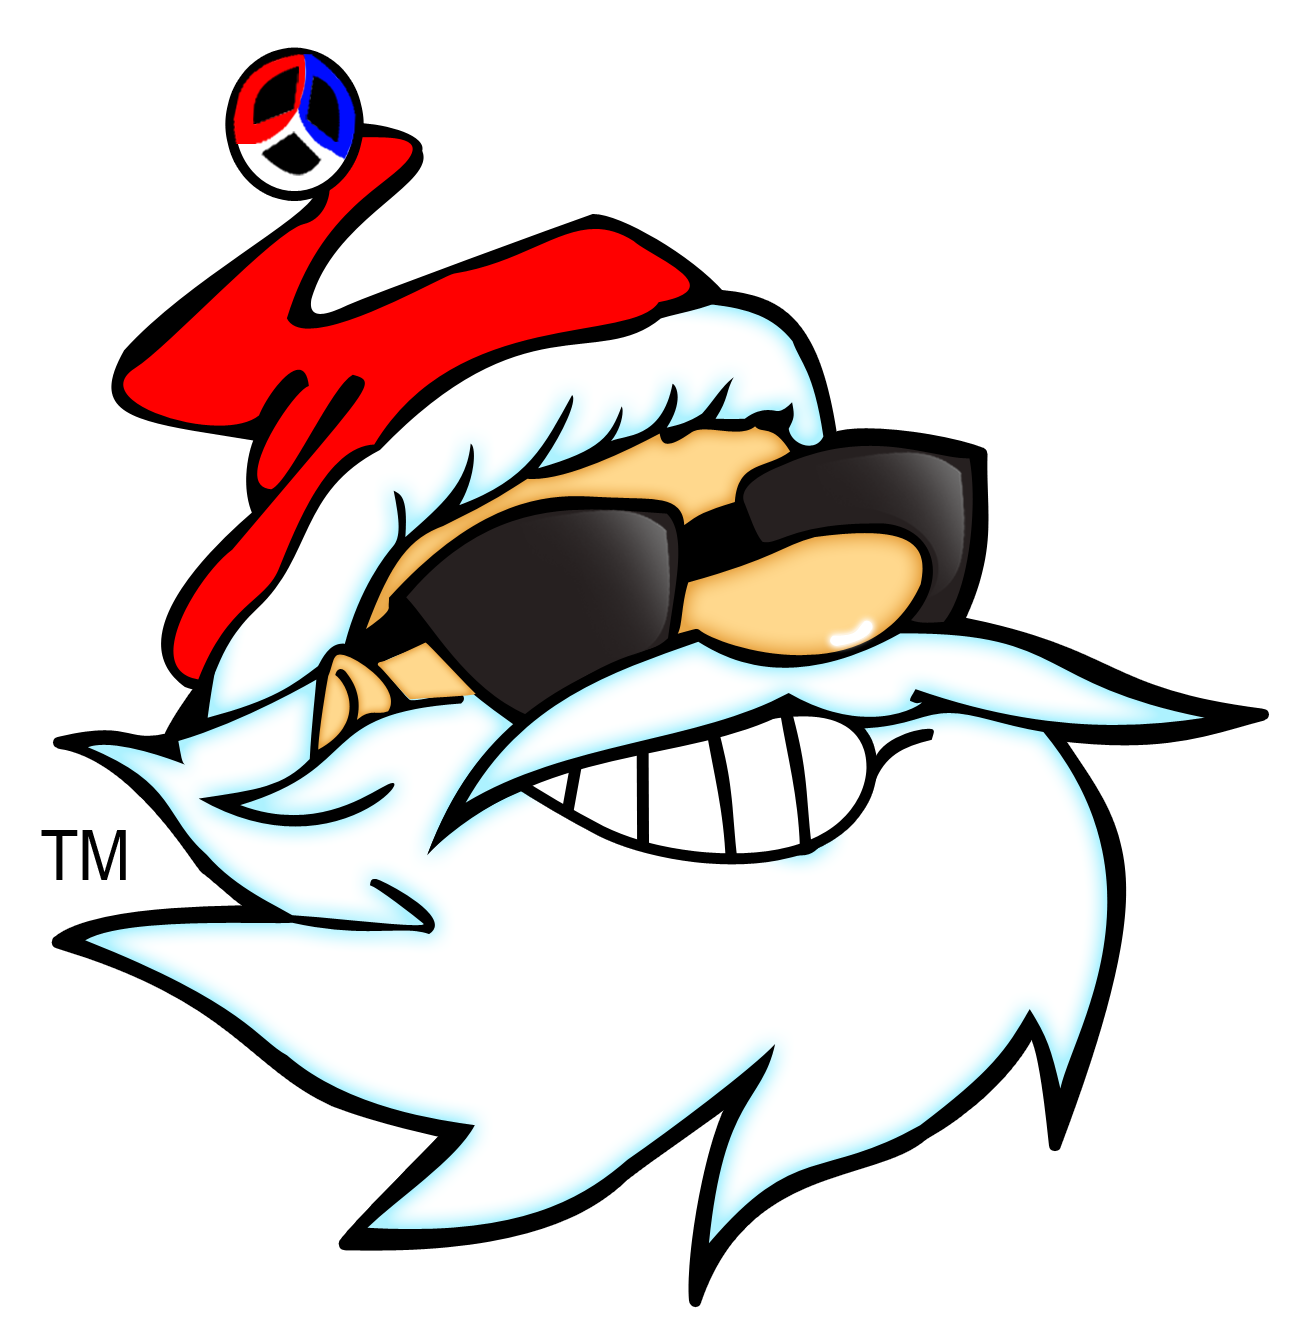 Voting clipart election candidate. Voteforsanta com vote for